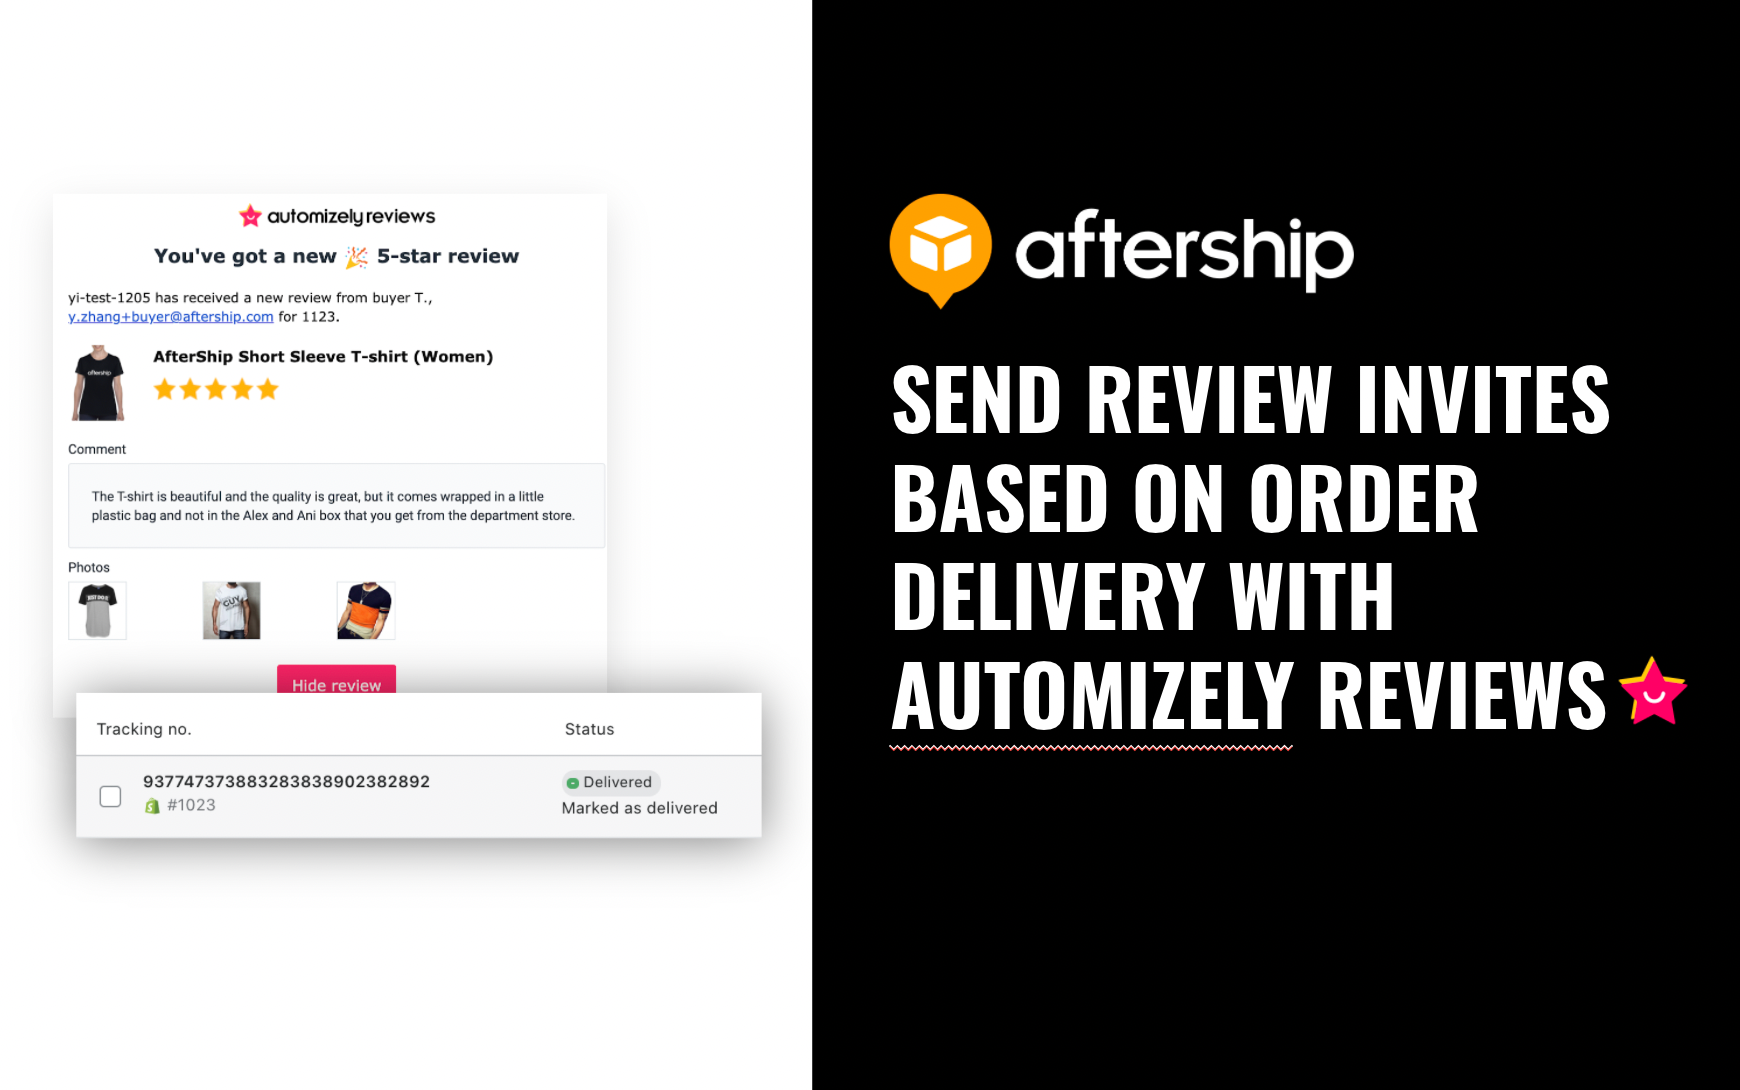 Push Review Request Emails Automatically After Delivering Orders Successfully